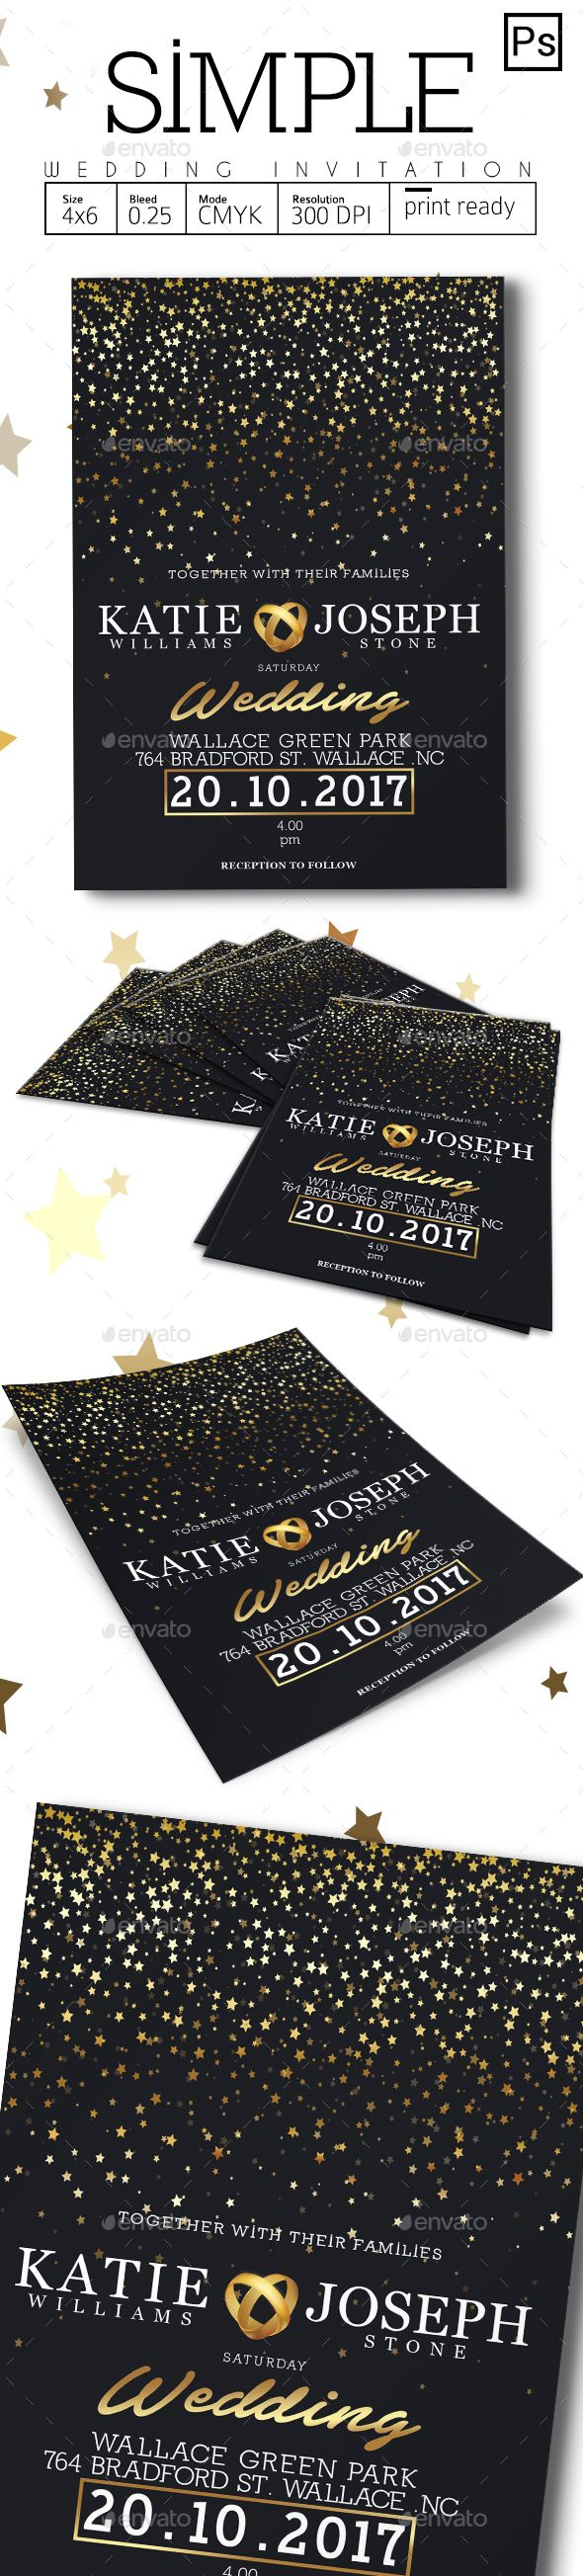 Simple Wedding Invitation — Photoshop PSD #tosca #date • Available here → https://graphicriver.net/item/simple-wedding-invitation/18788904?ref=pxcr